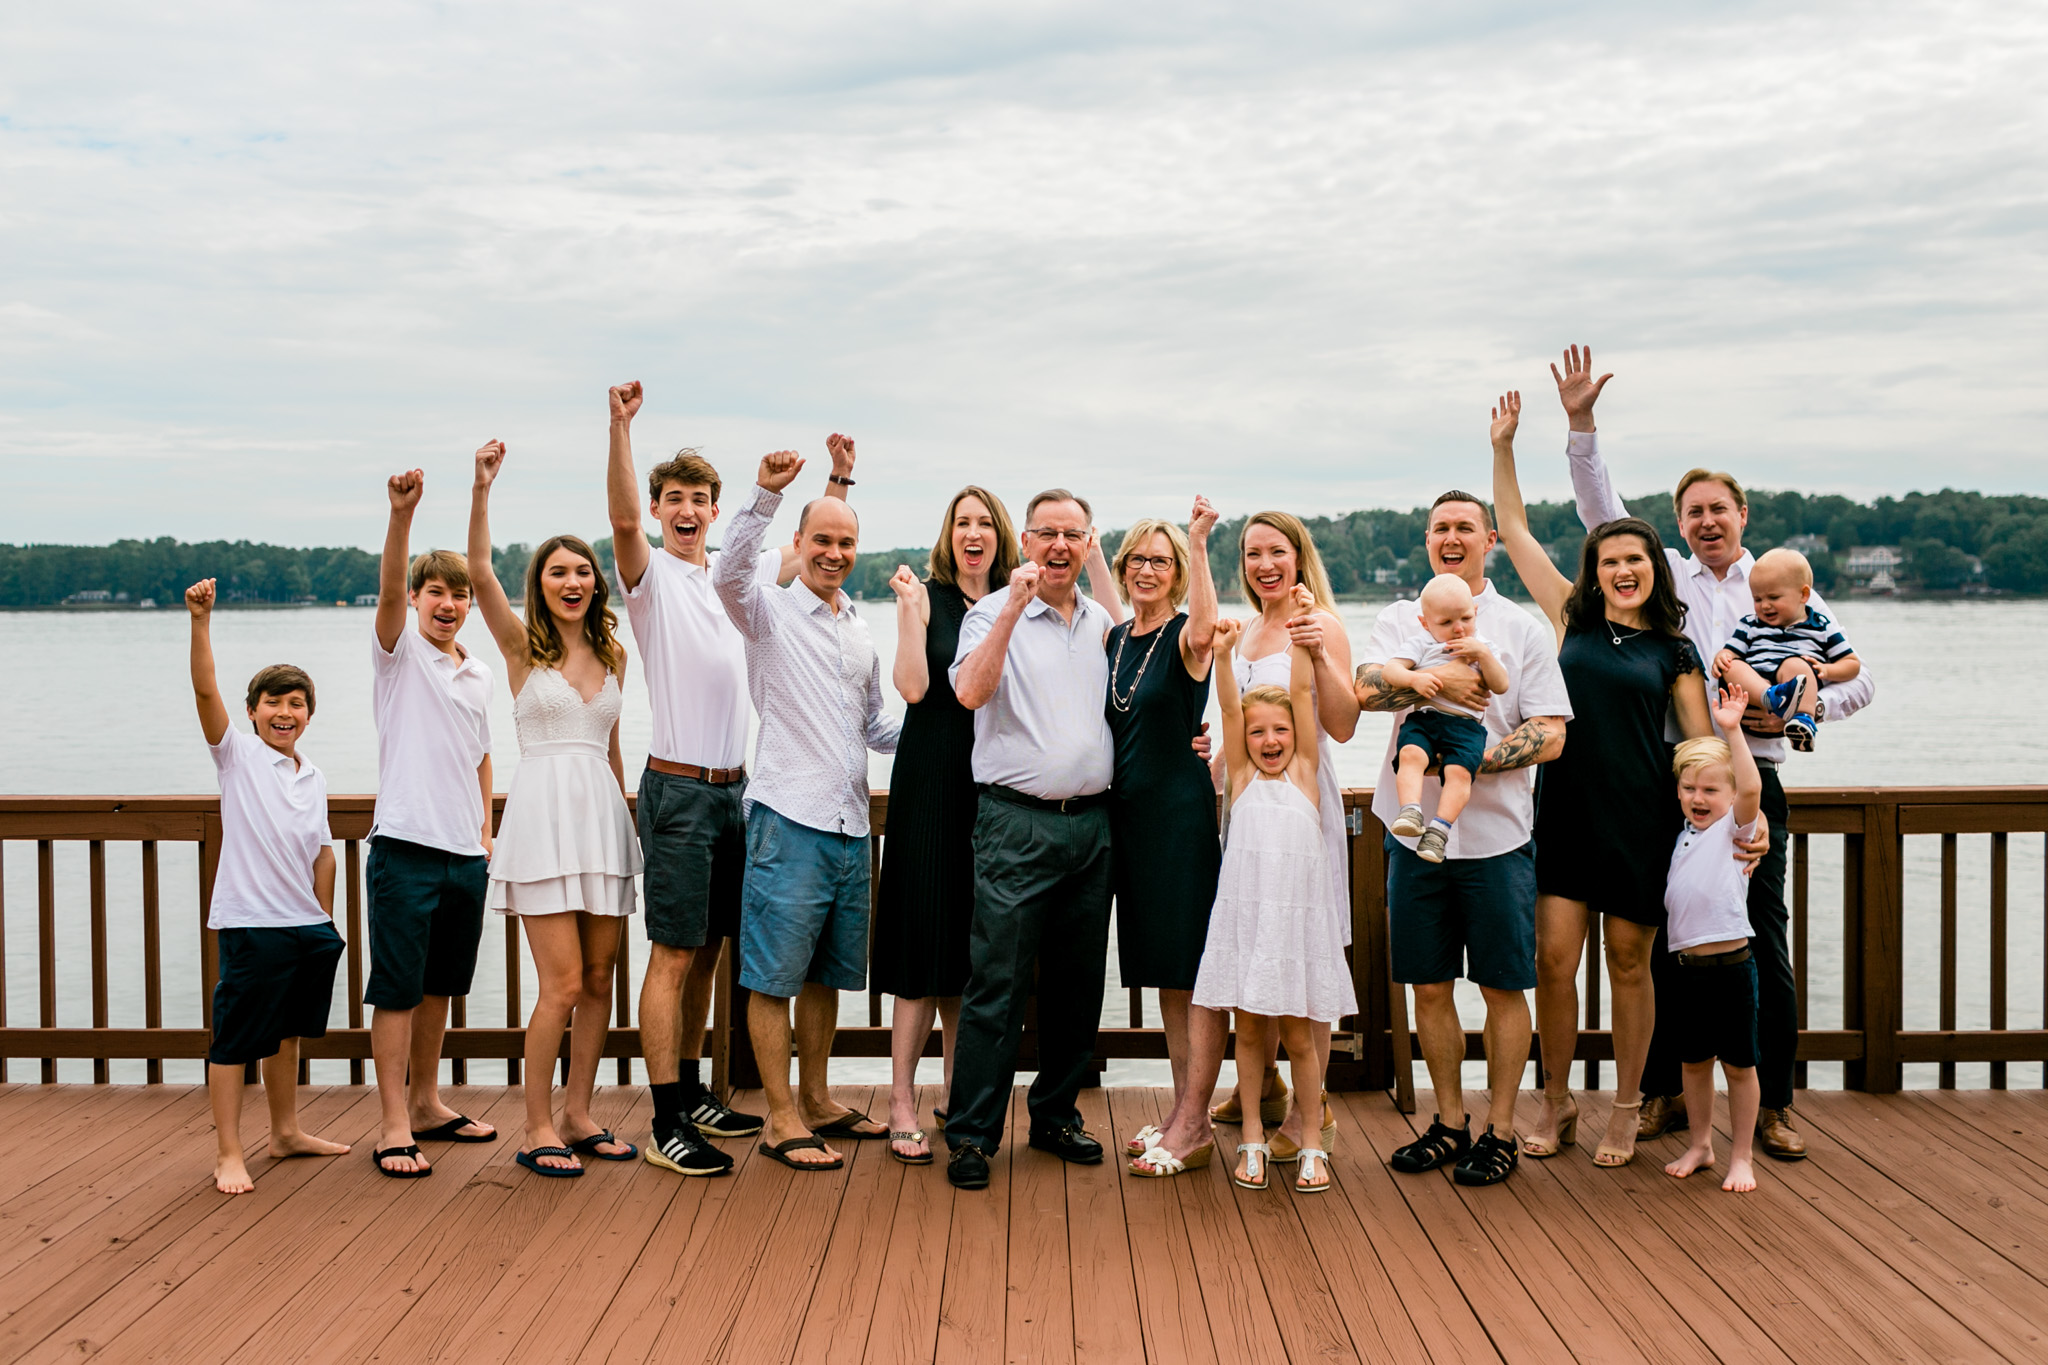 Raleigh Family Photographer | By G. Lin Photography | Family reunion photo outside by dock